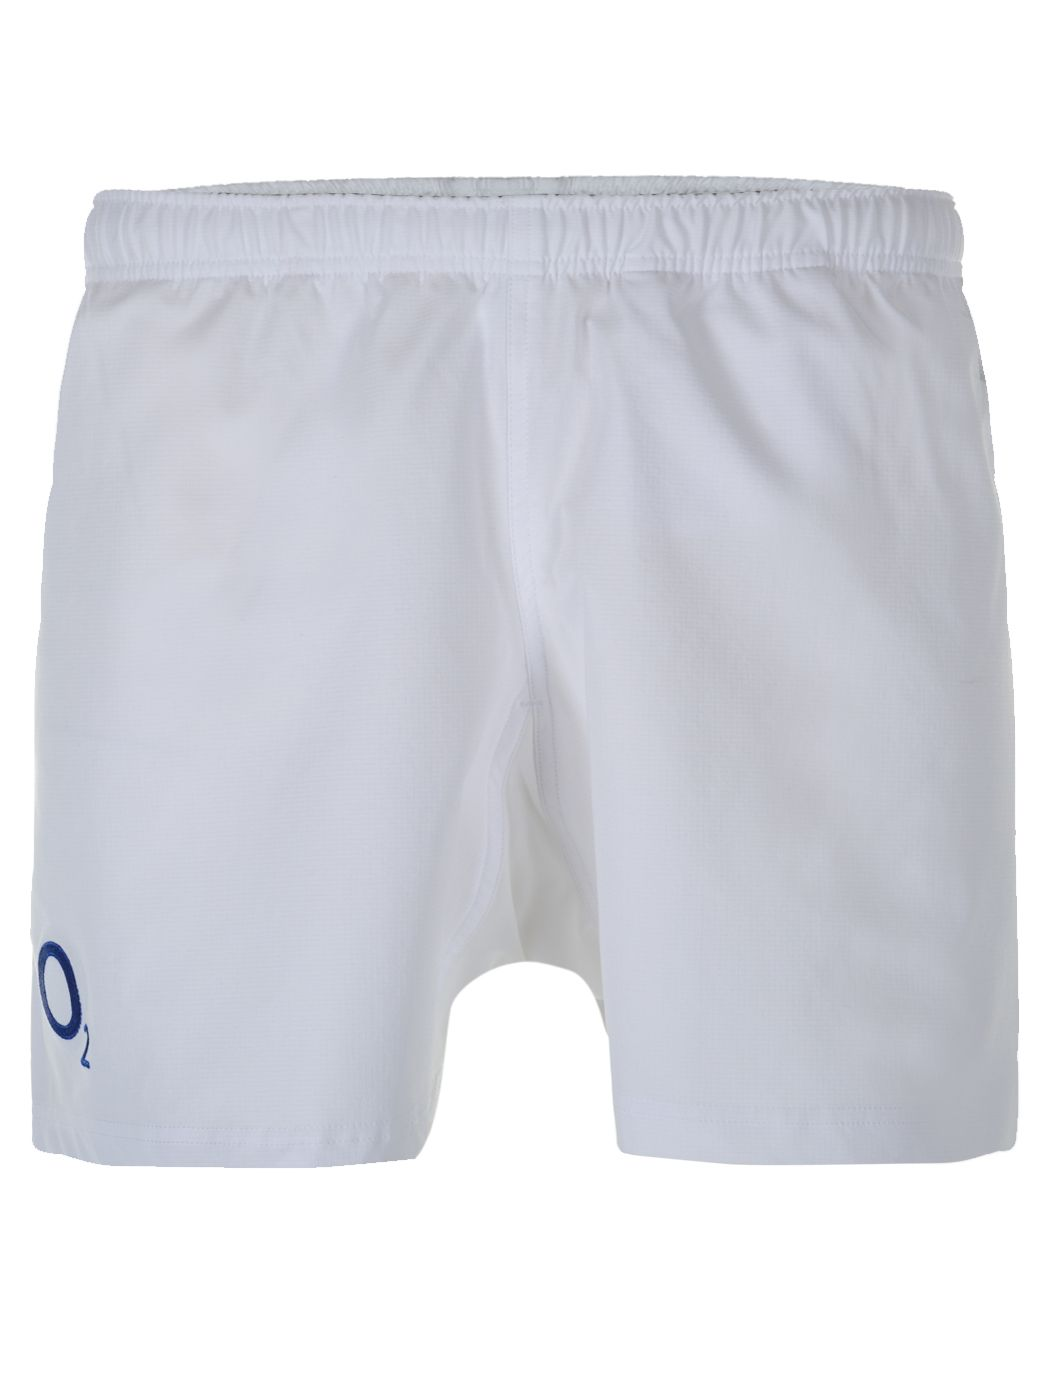 Canterbury England Home Shorts, White